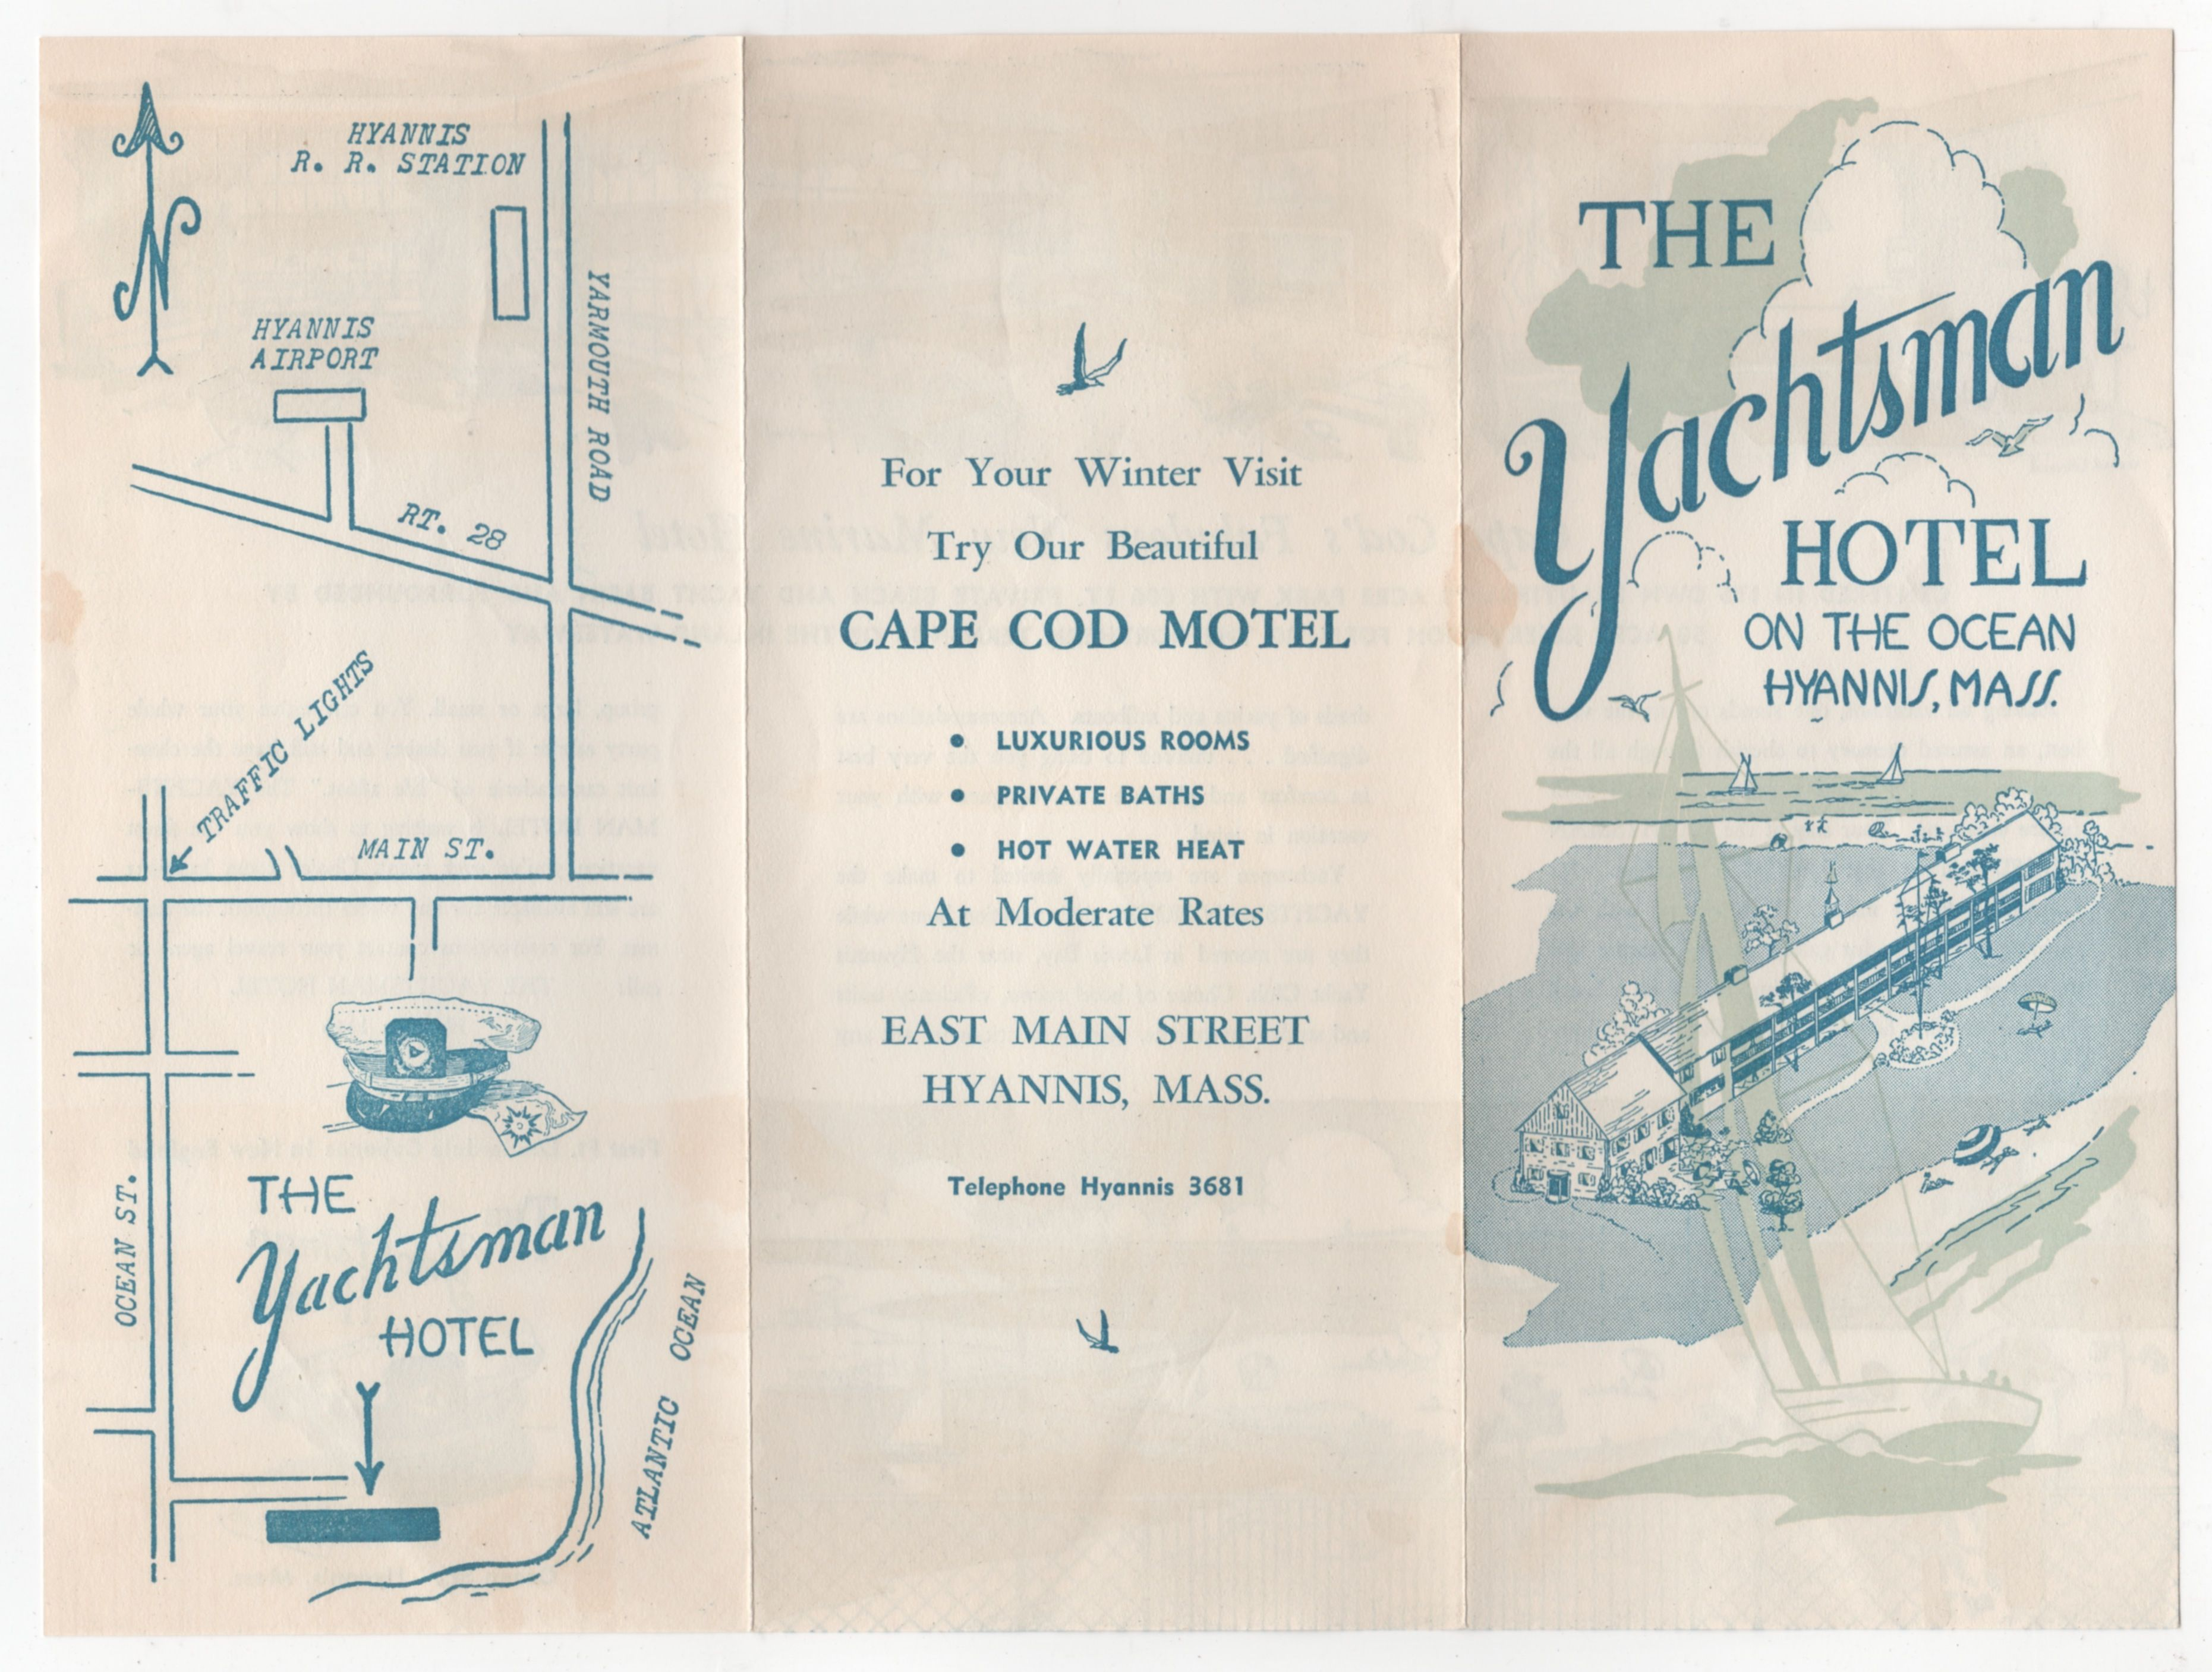 1956 brochure for the The Yachtsman Hotel in Hyannis, Mass. on Cape Cod